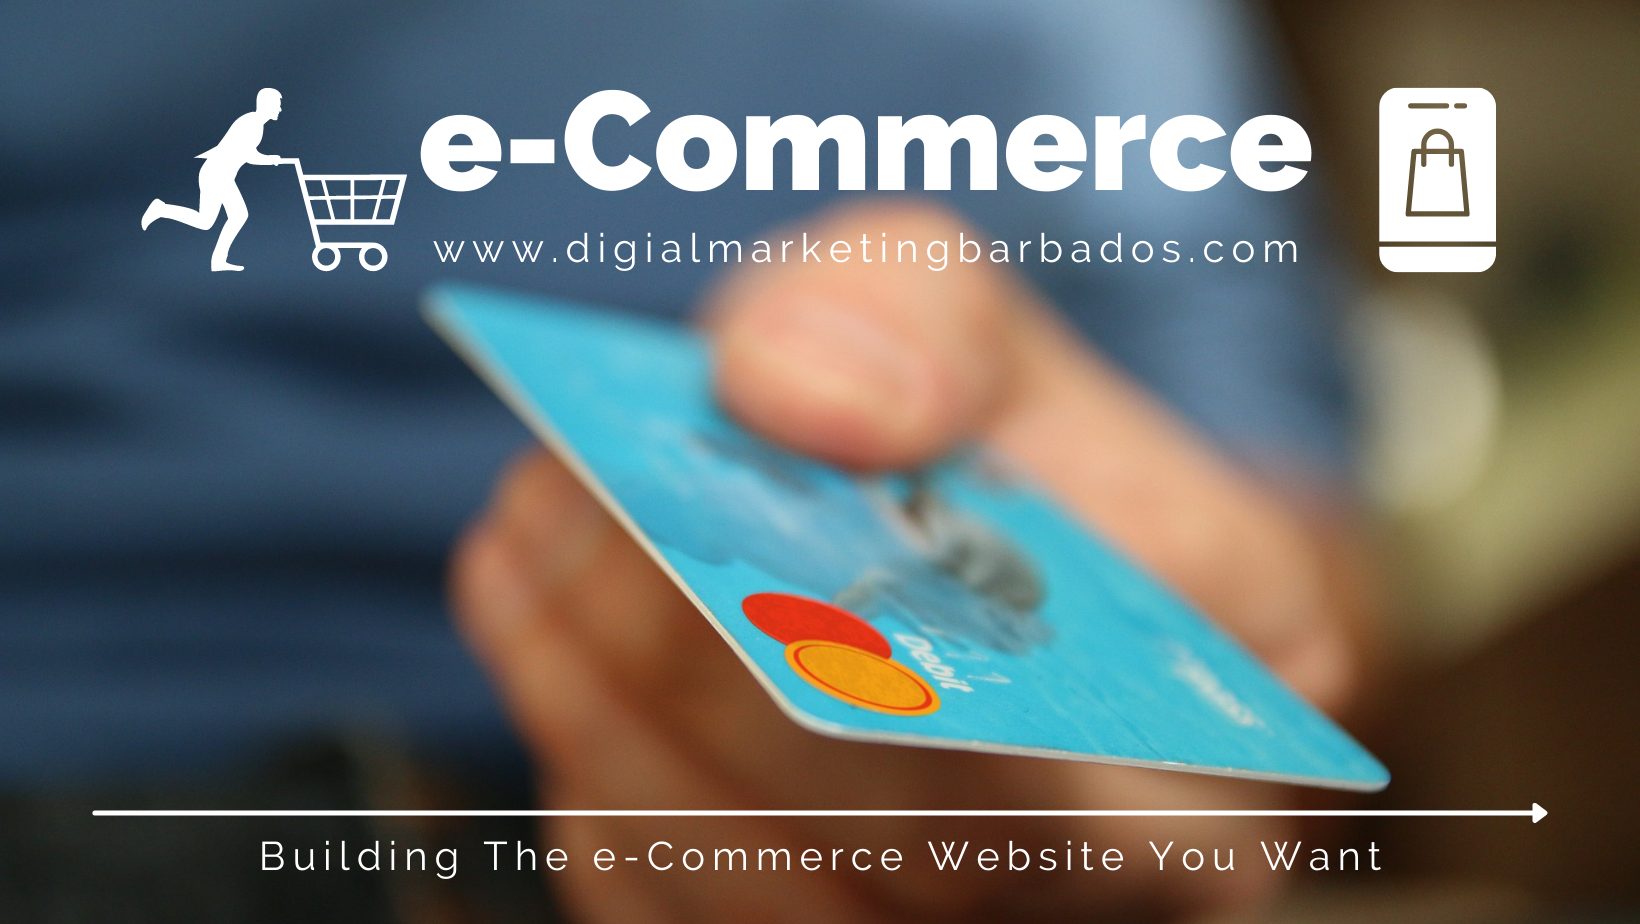 Building The eCommerce Website You Want. There's no denying the overwhelming (and ever-increasing) popularity of WordPress, from directories to online portfolios, to massive online magazines publishing thousands of articles yearly. WordPress has become the go-to tool for all kinds of online business ventures and success.